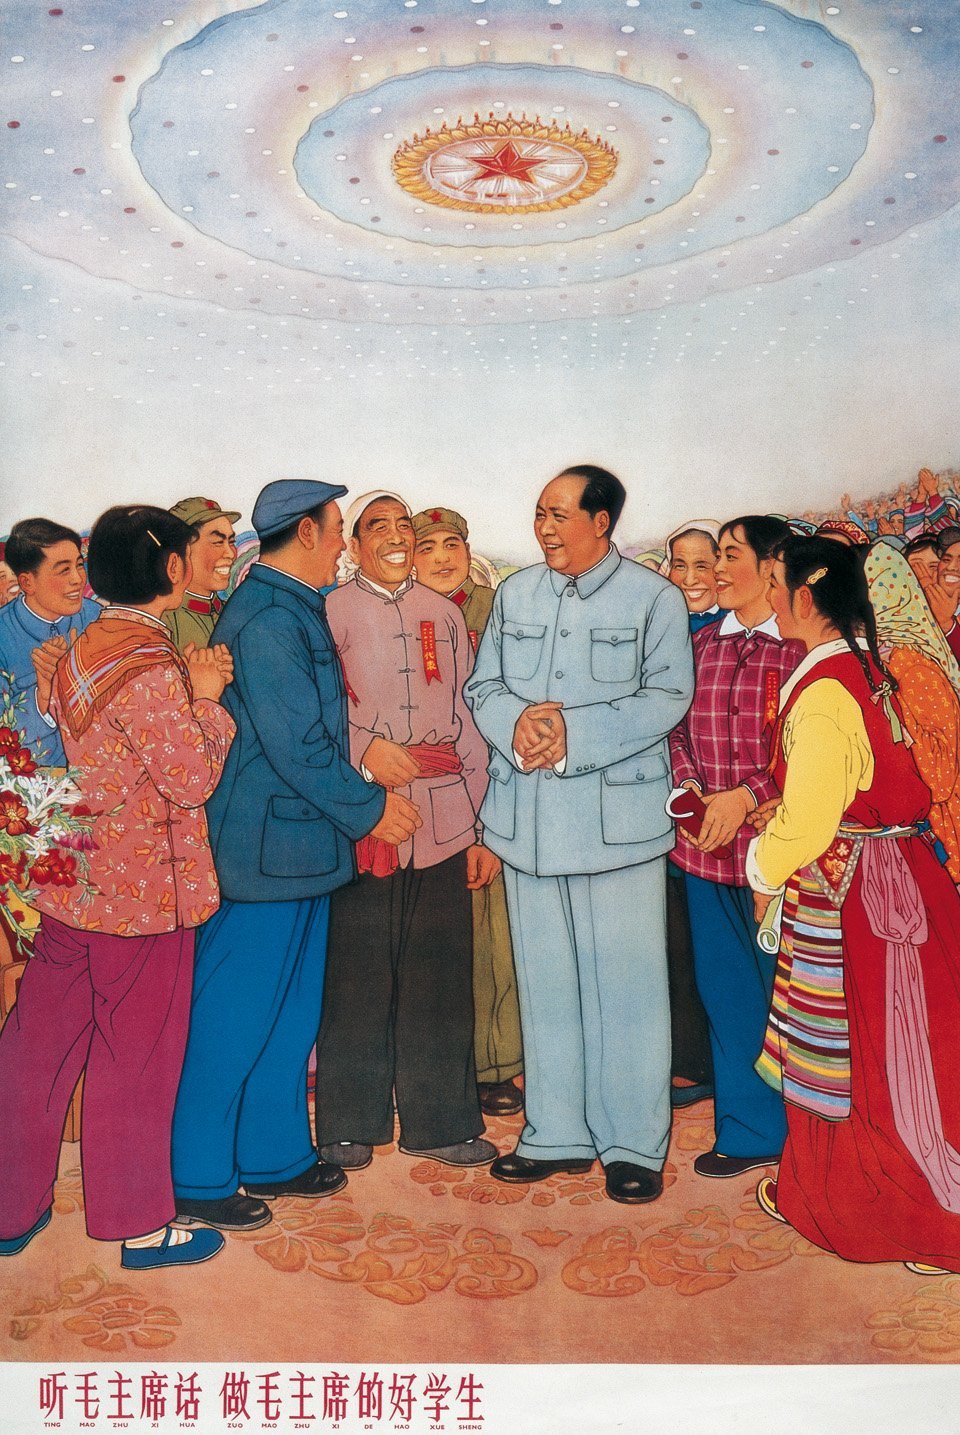 preview_va_25_chinese_propaganda_posters_05_1111101806_id_517041